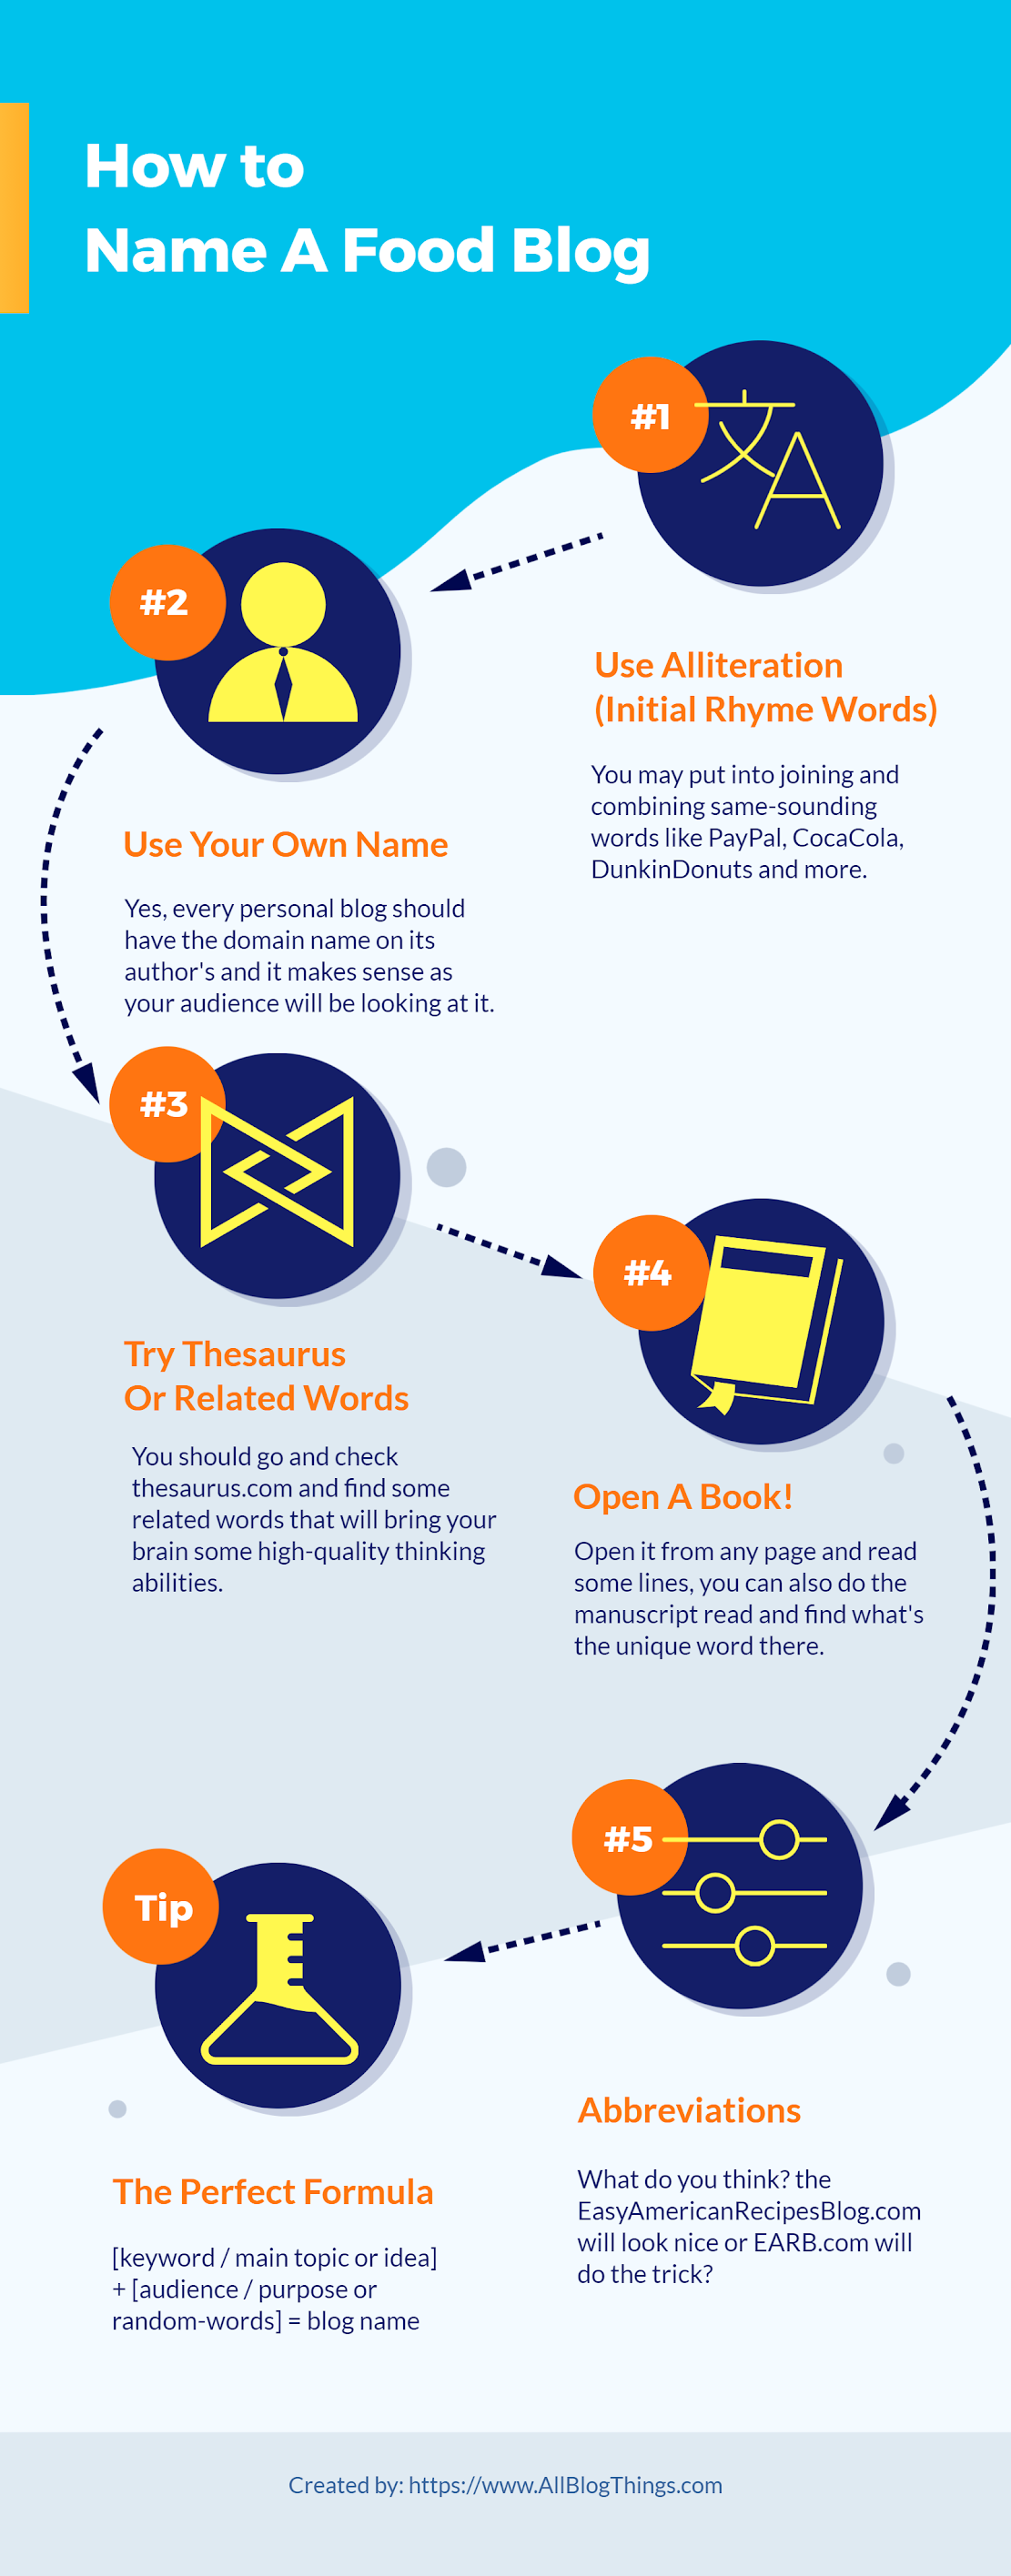 How To Name A Food Blog (Infographic)